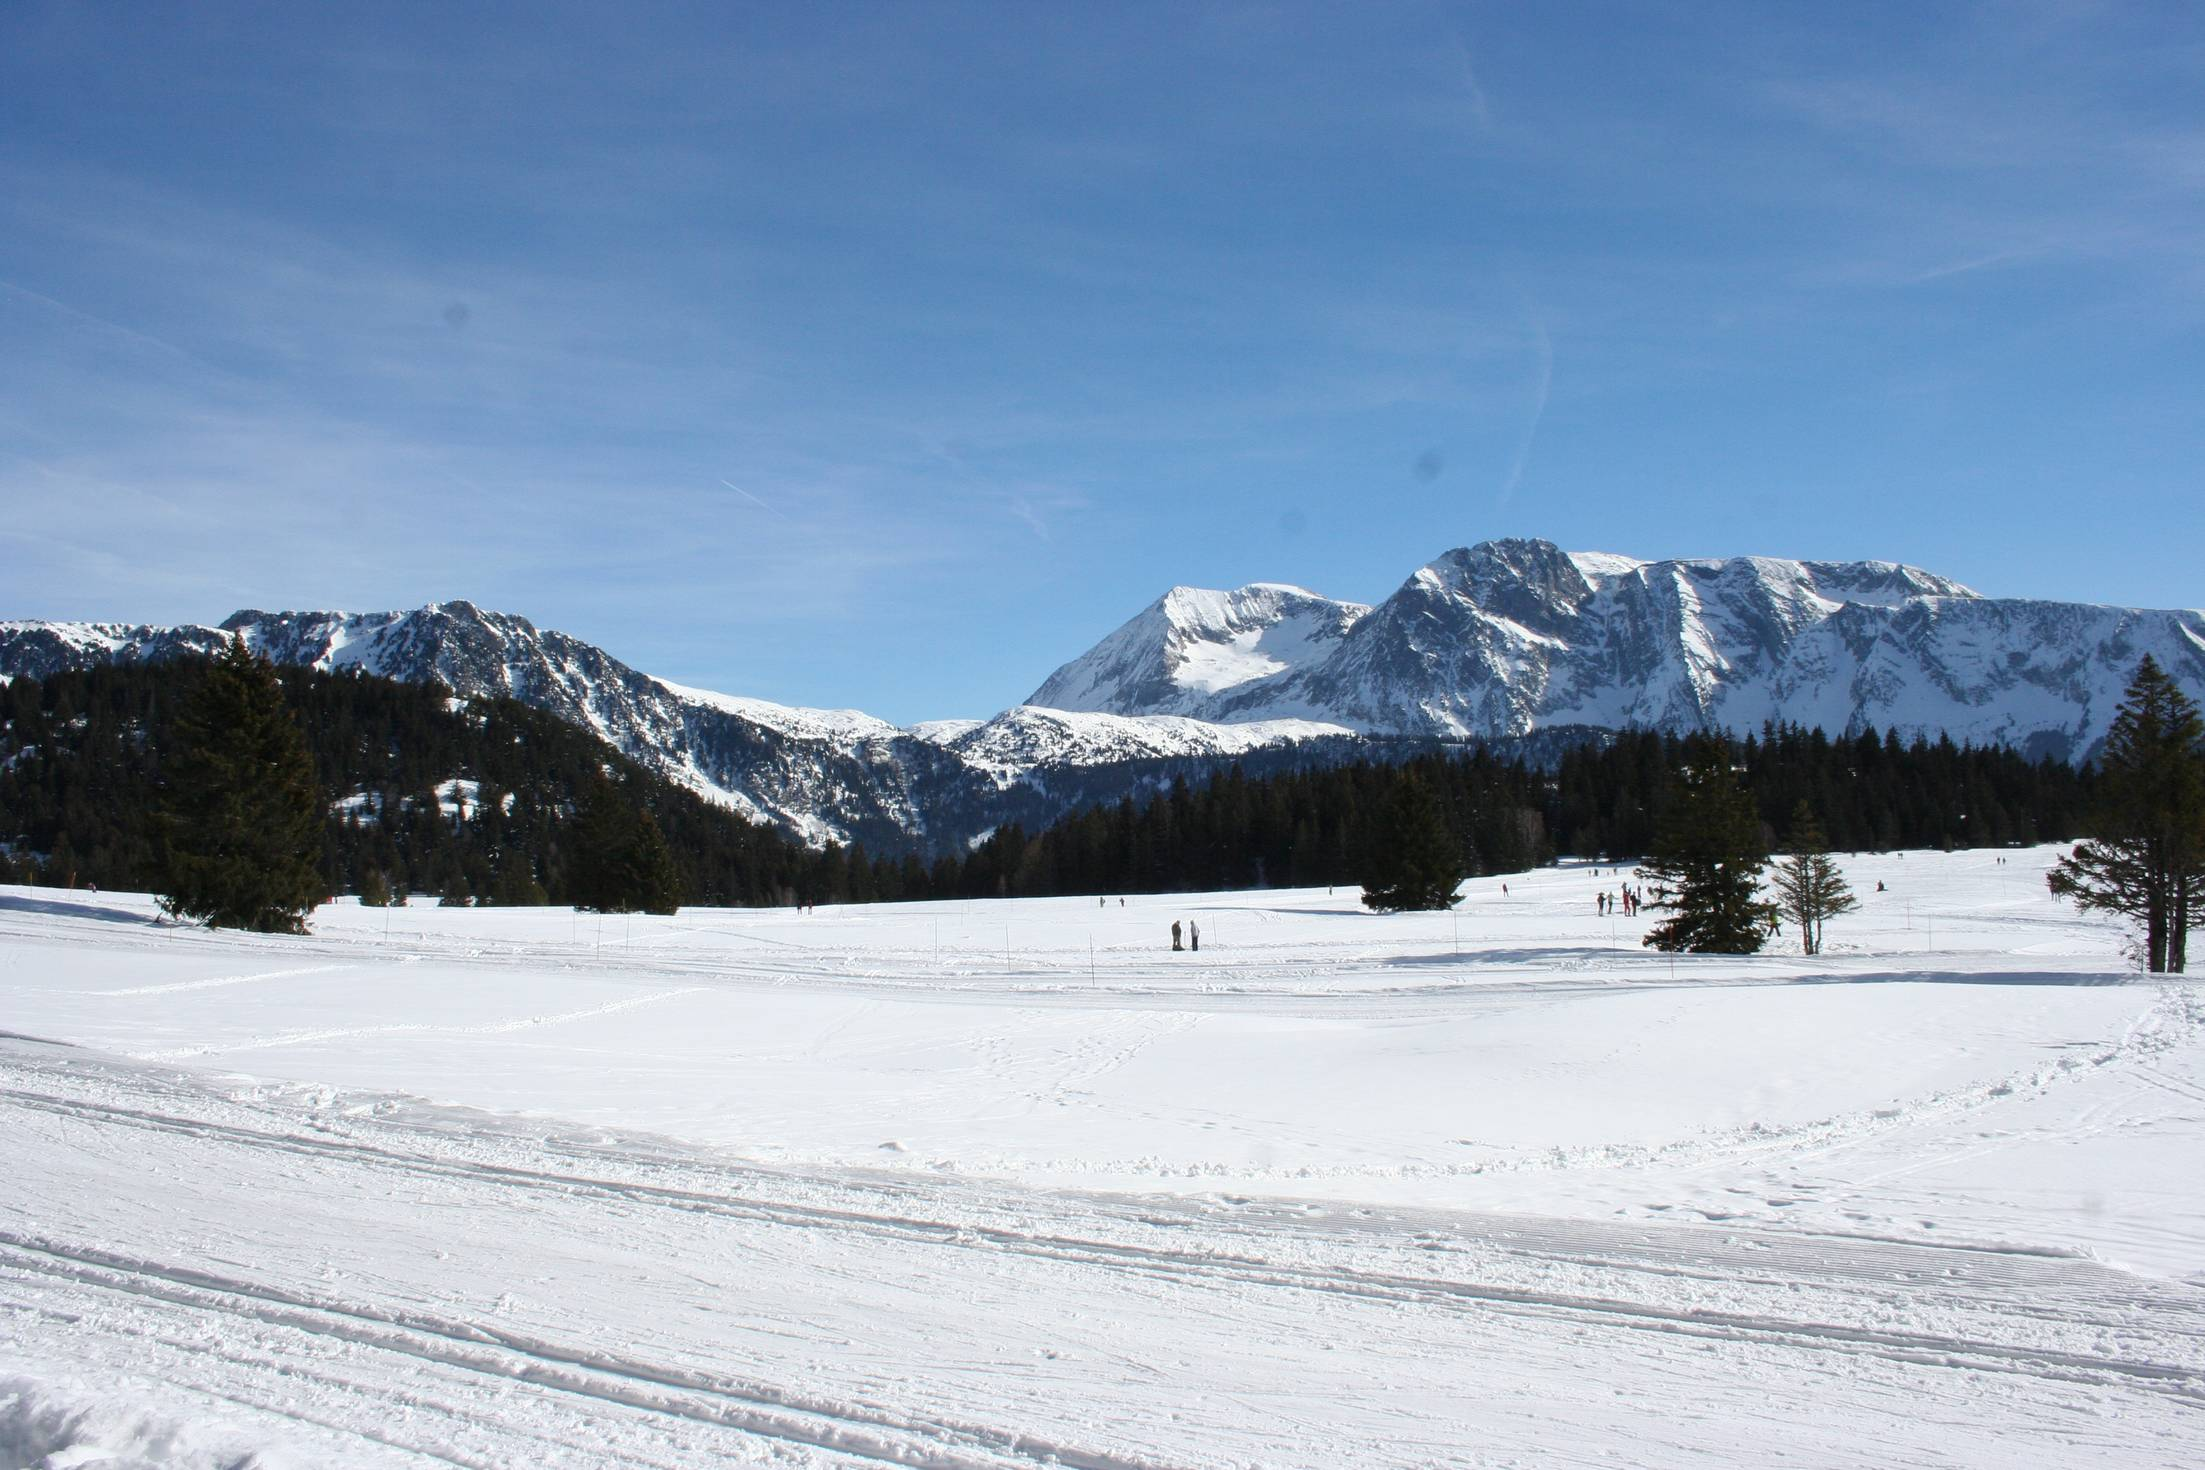 20120218_0002 le Taillefer